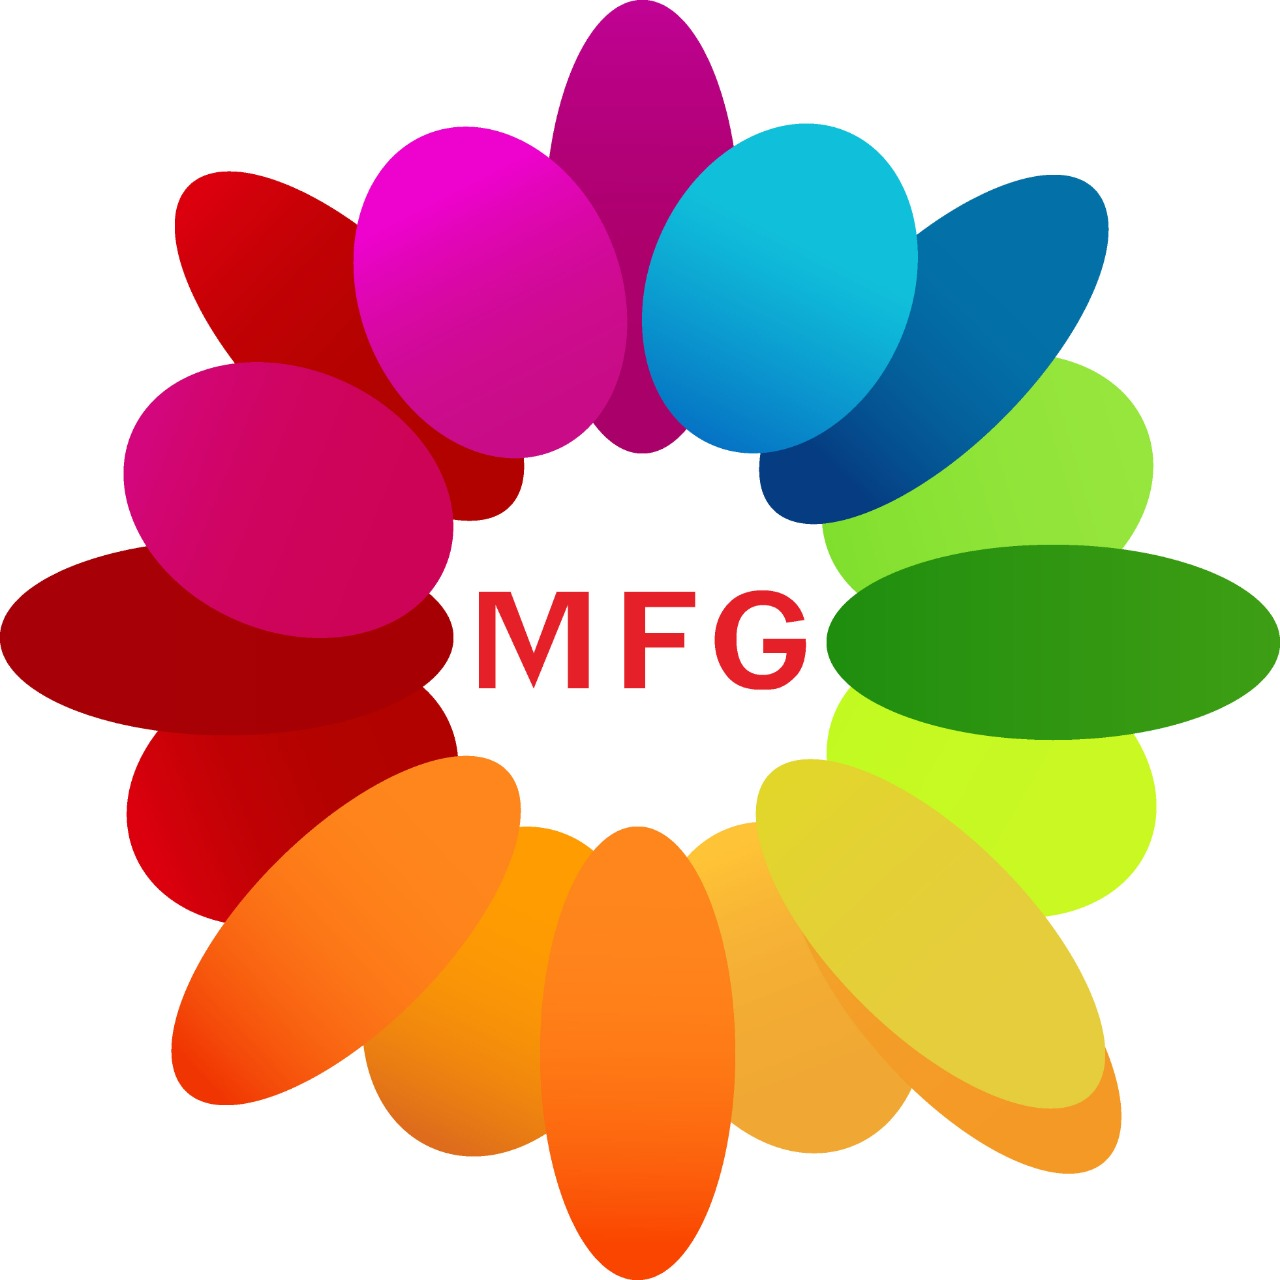 1 kg chocolate walnut premium quality cake with 1 rakhi and roli chawal